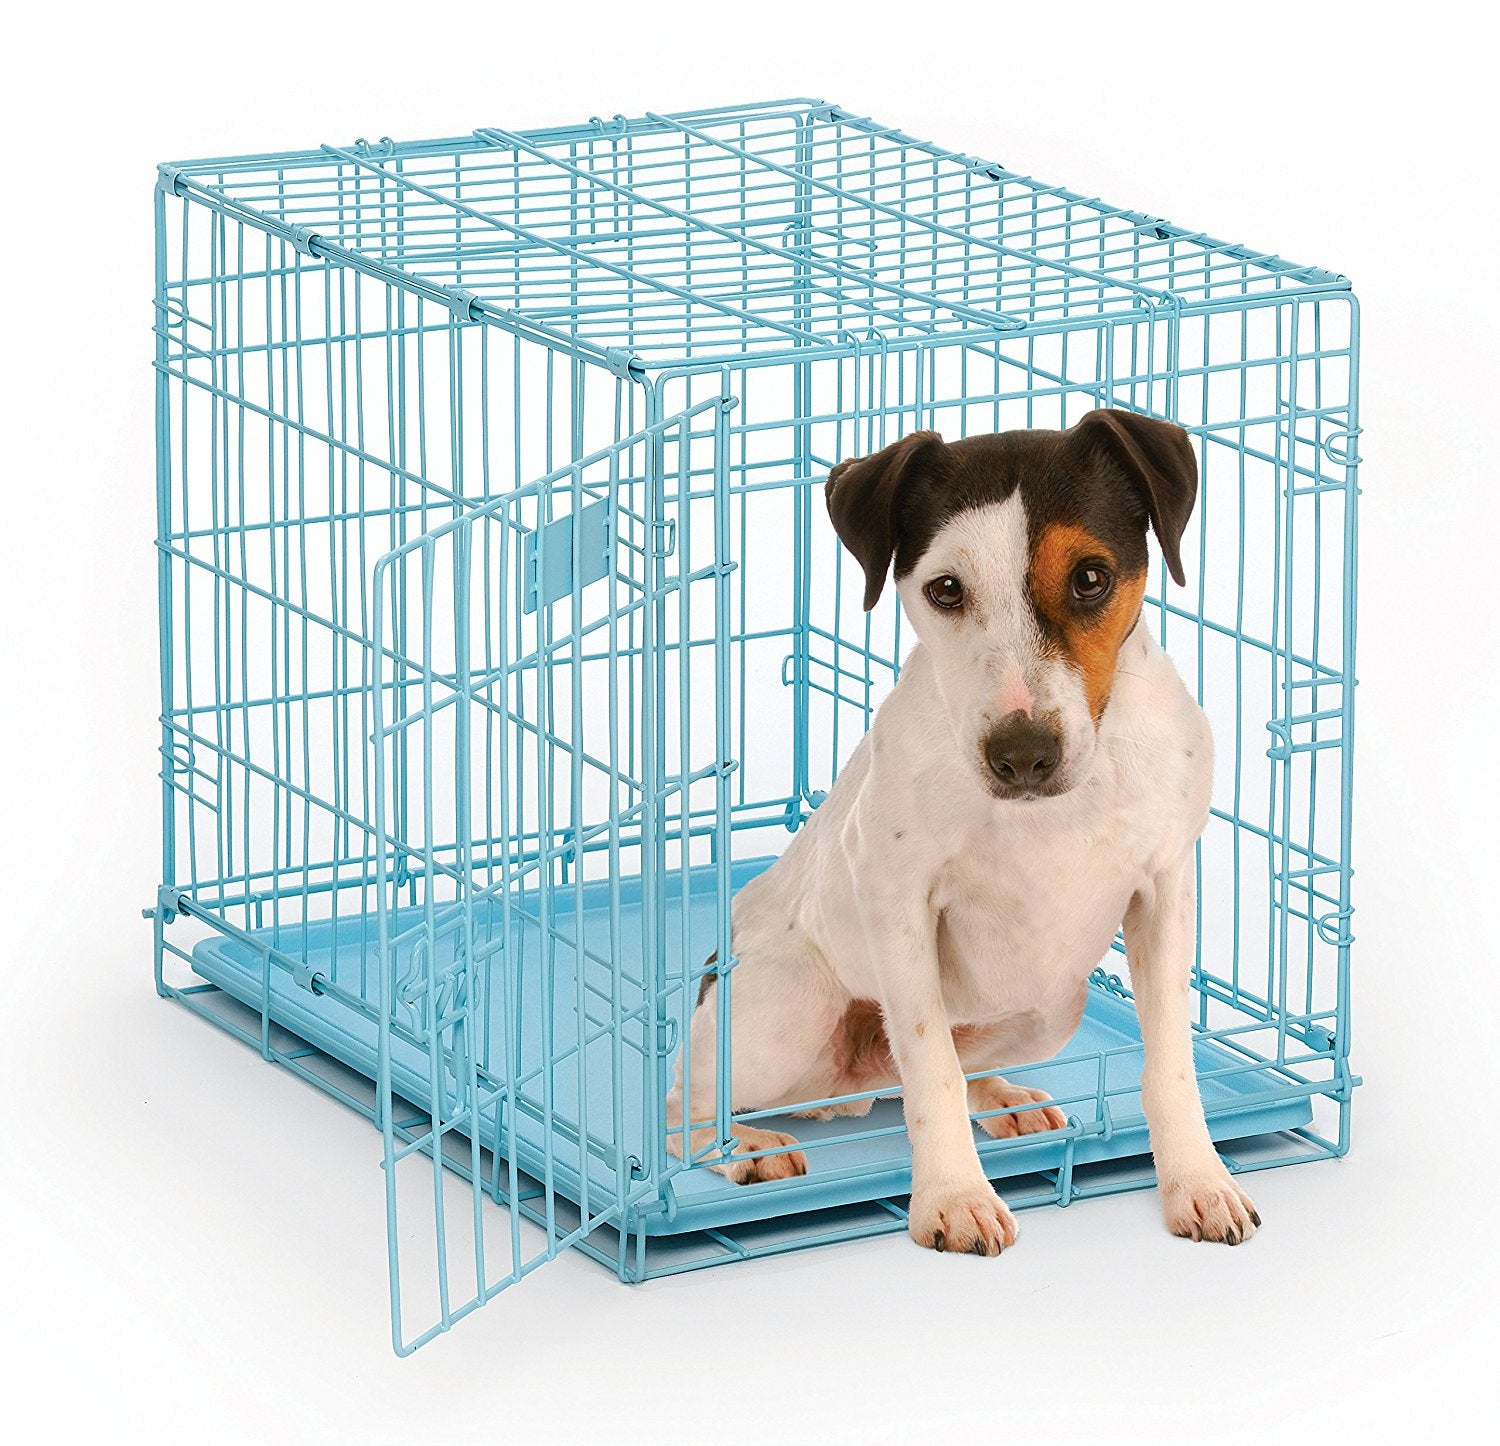 Midwest 1524BL iCrate Single Door Dog Crate from Midwest